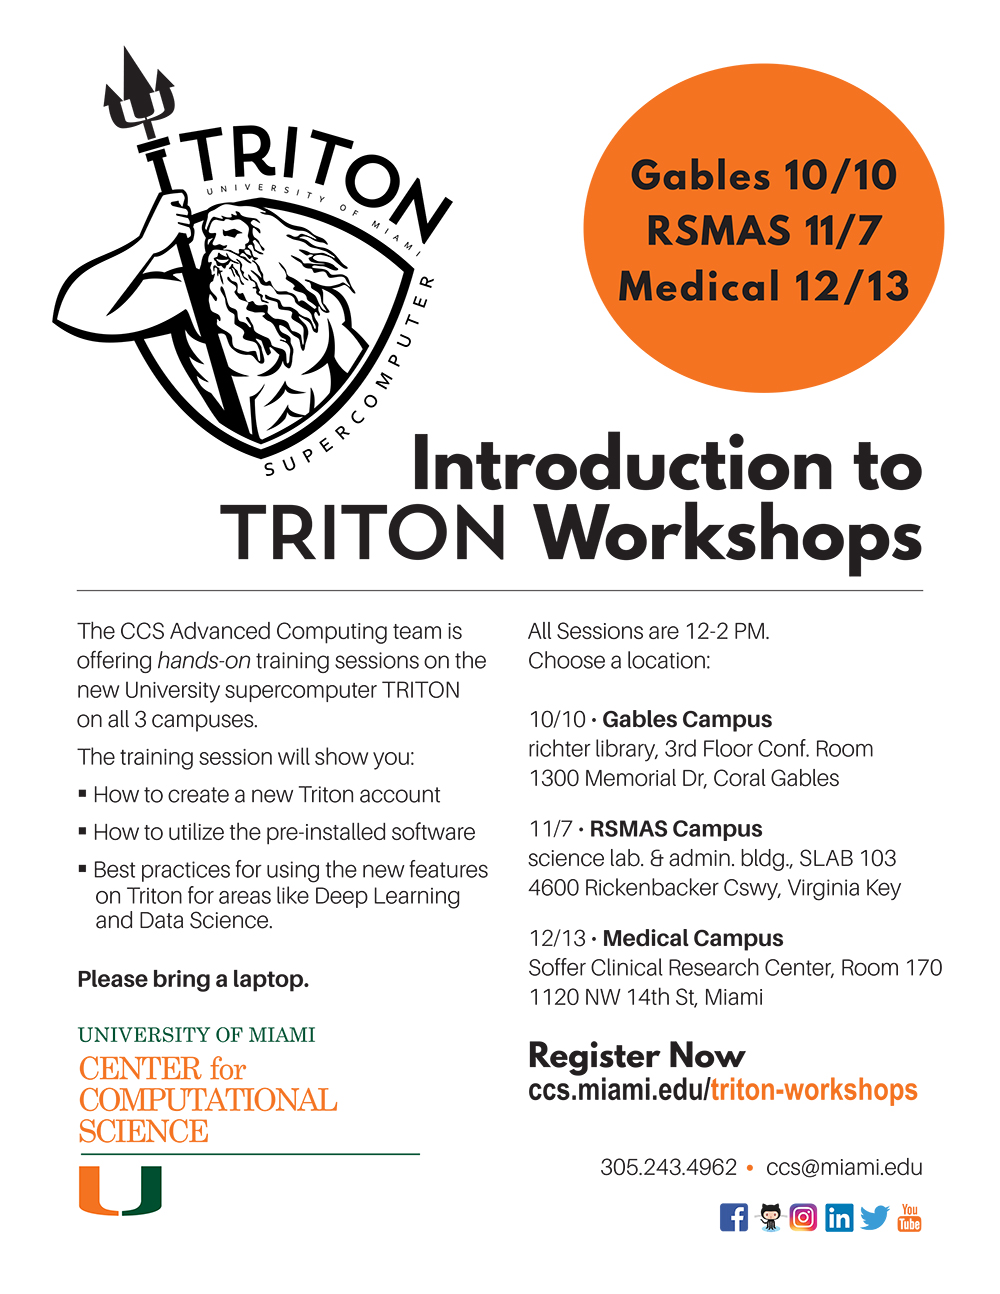 University of Miami Center for Computational Science Introduction to TRITON Workshops flyer